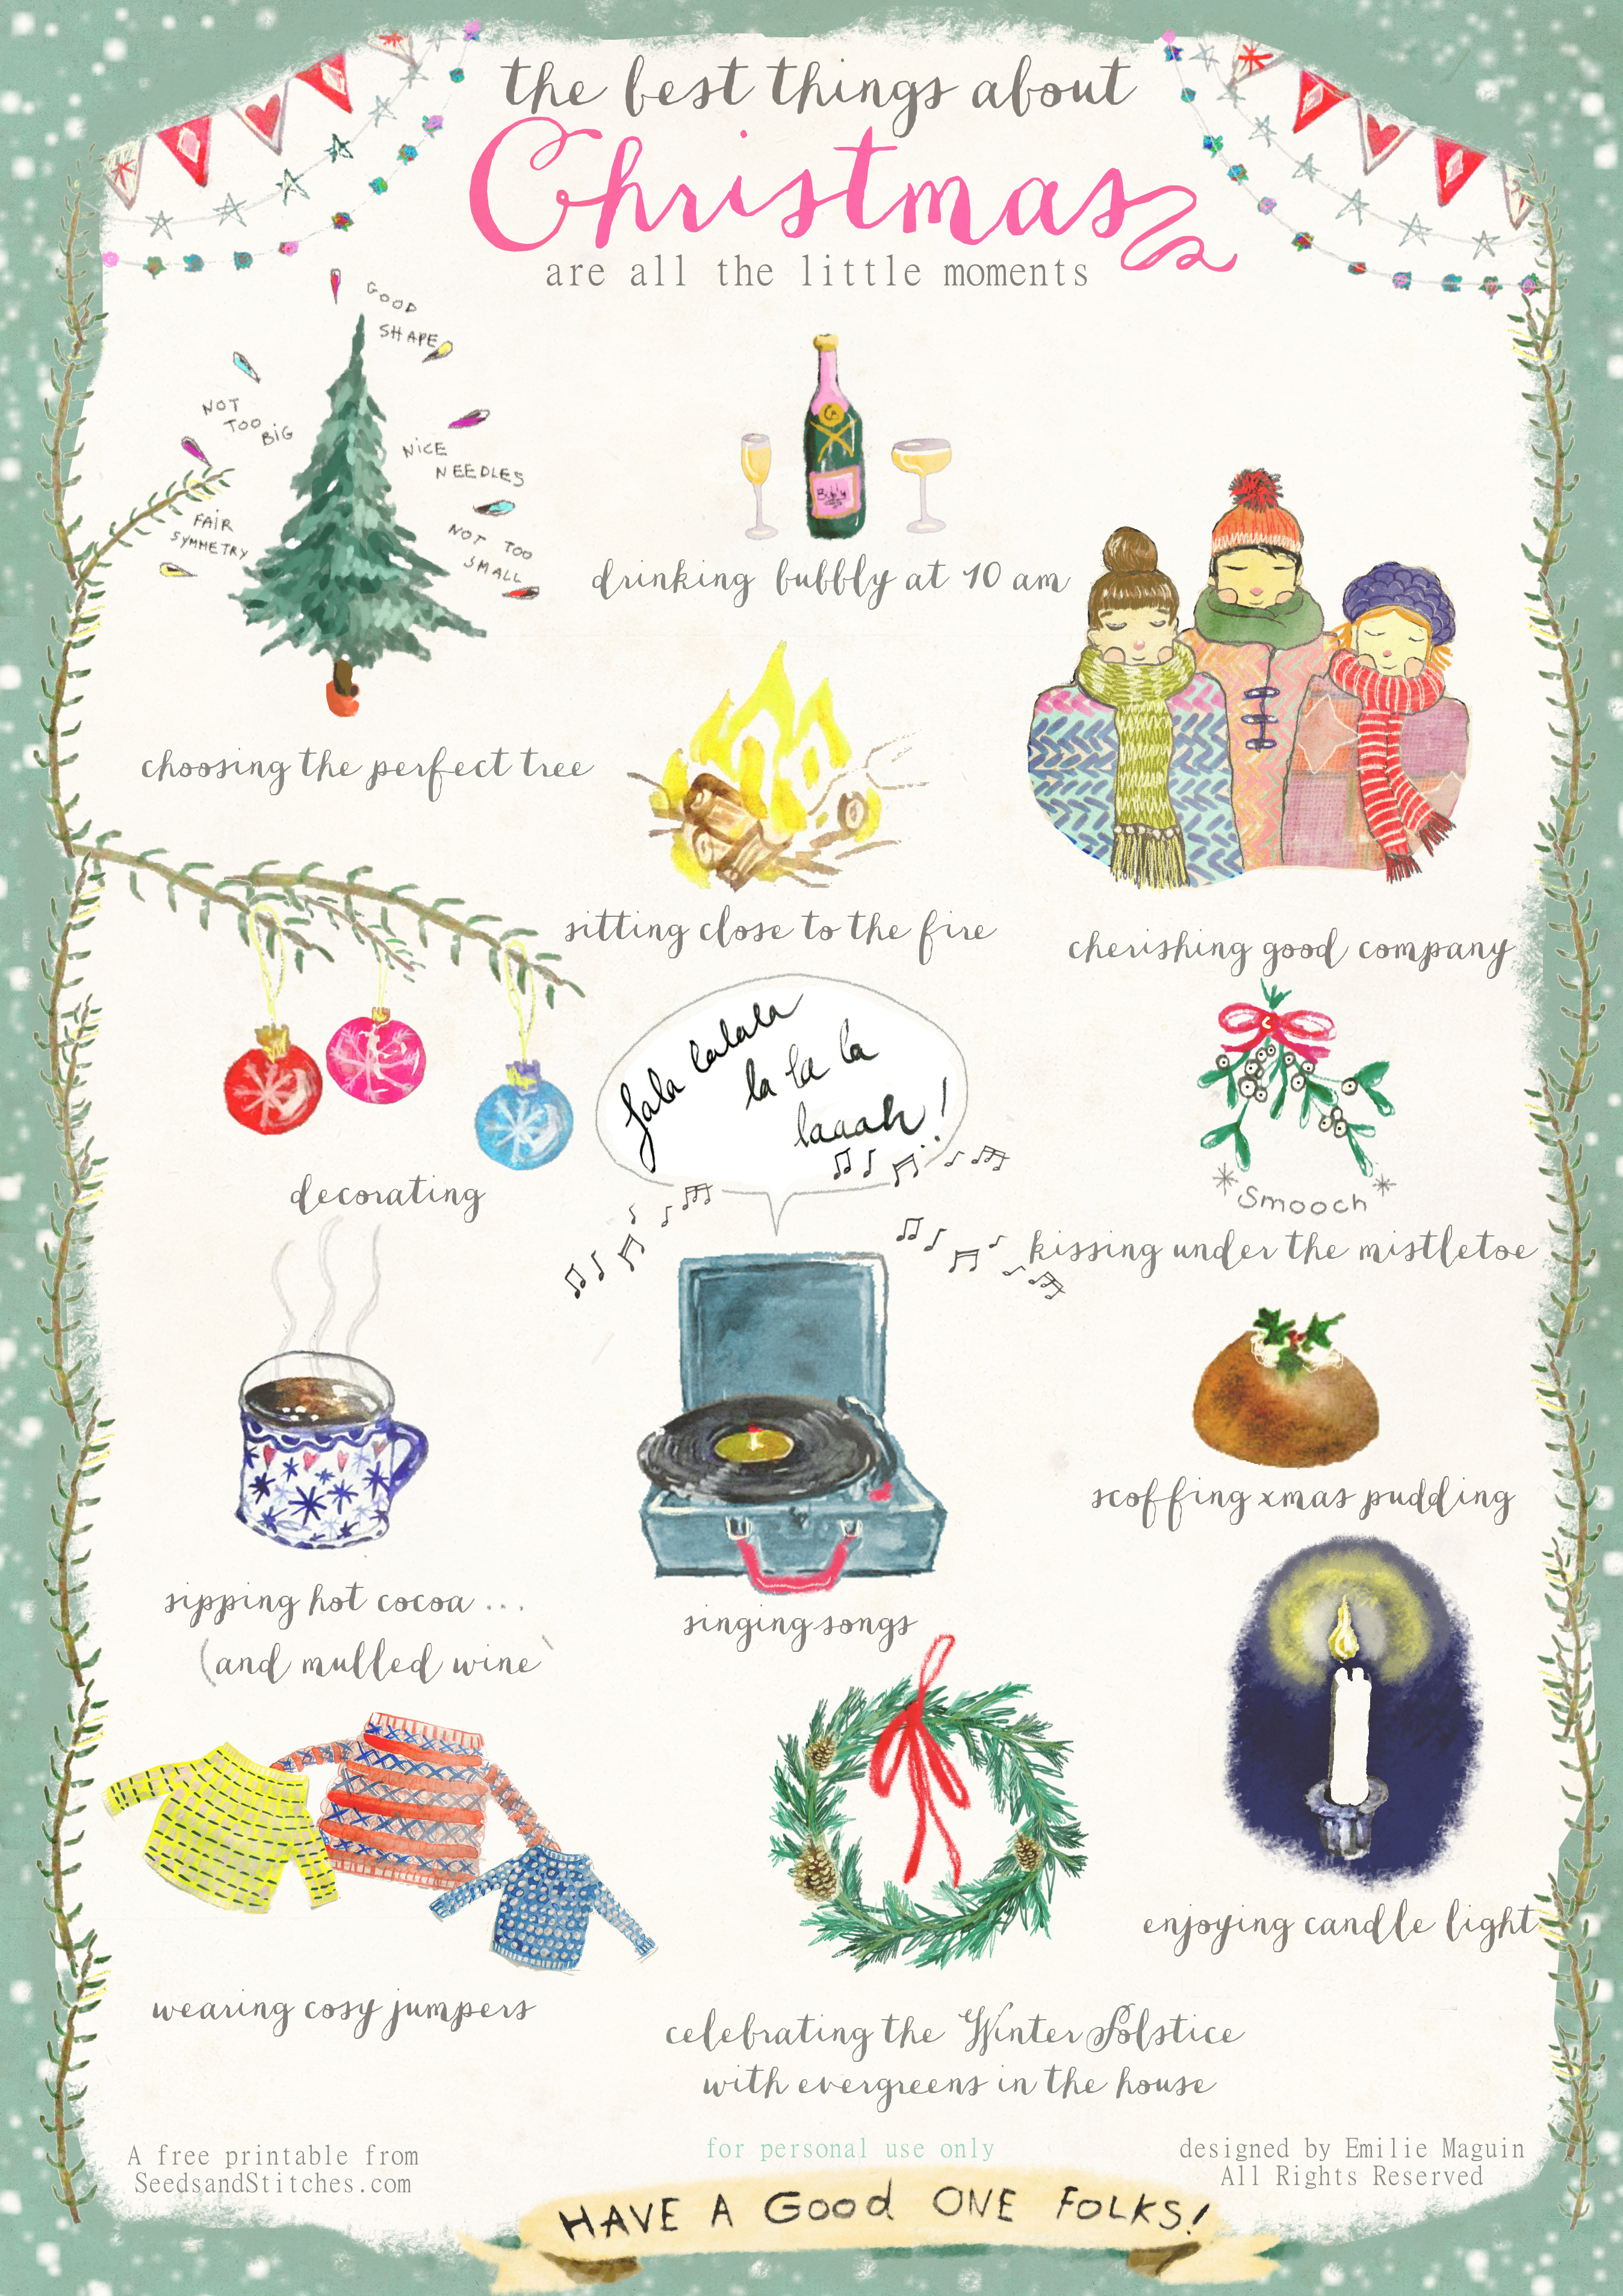 claim back christmas nine ideas for a thrifty less consuming 2014 11 26 xmassp jpg christmas poster